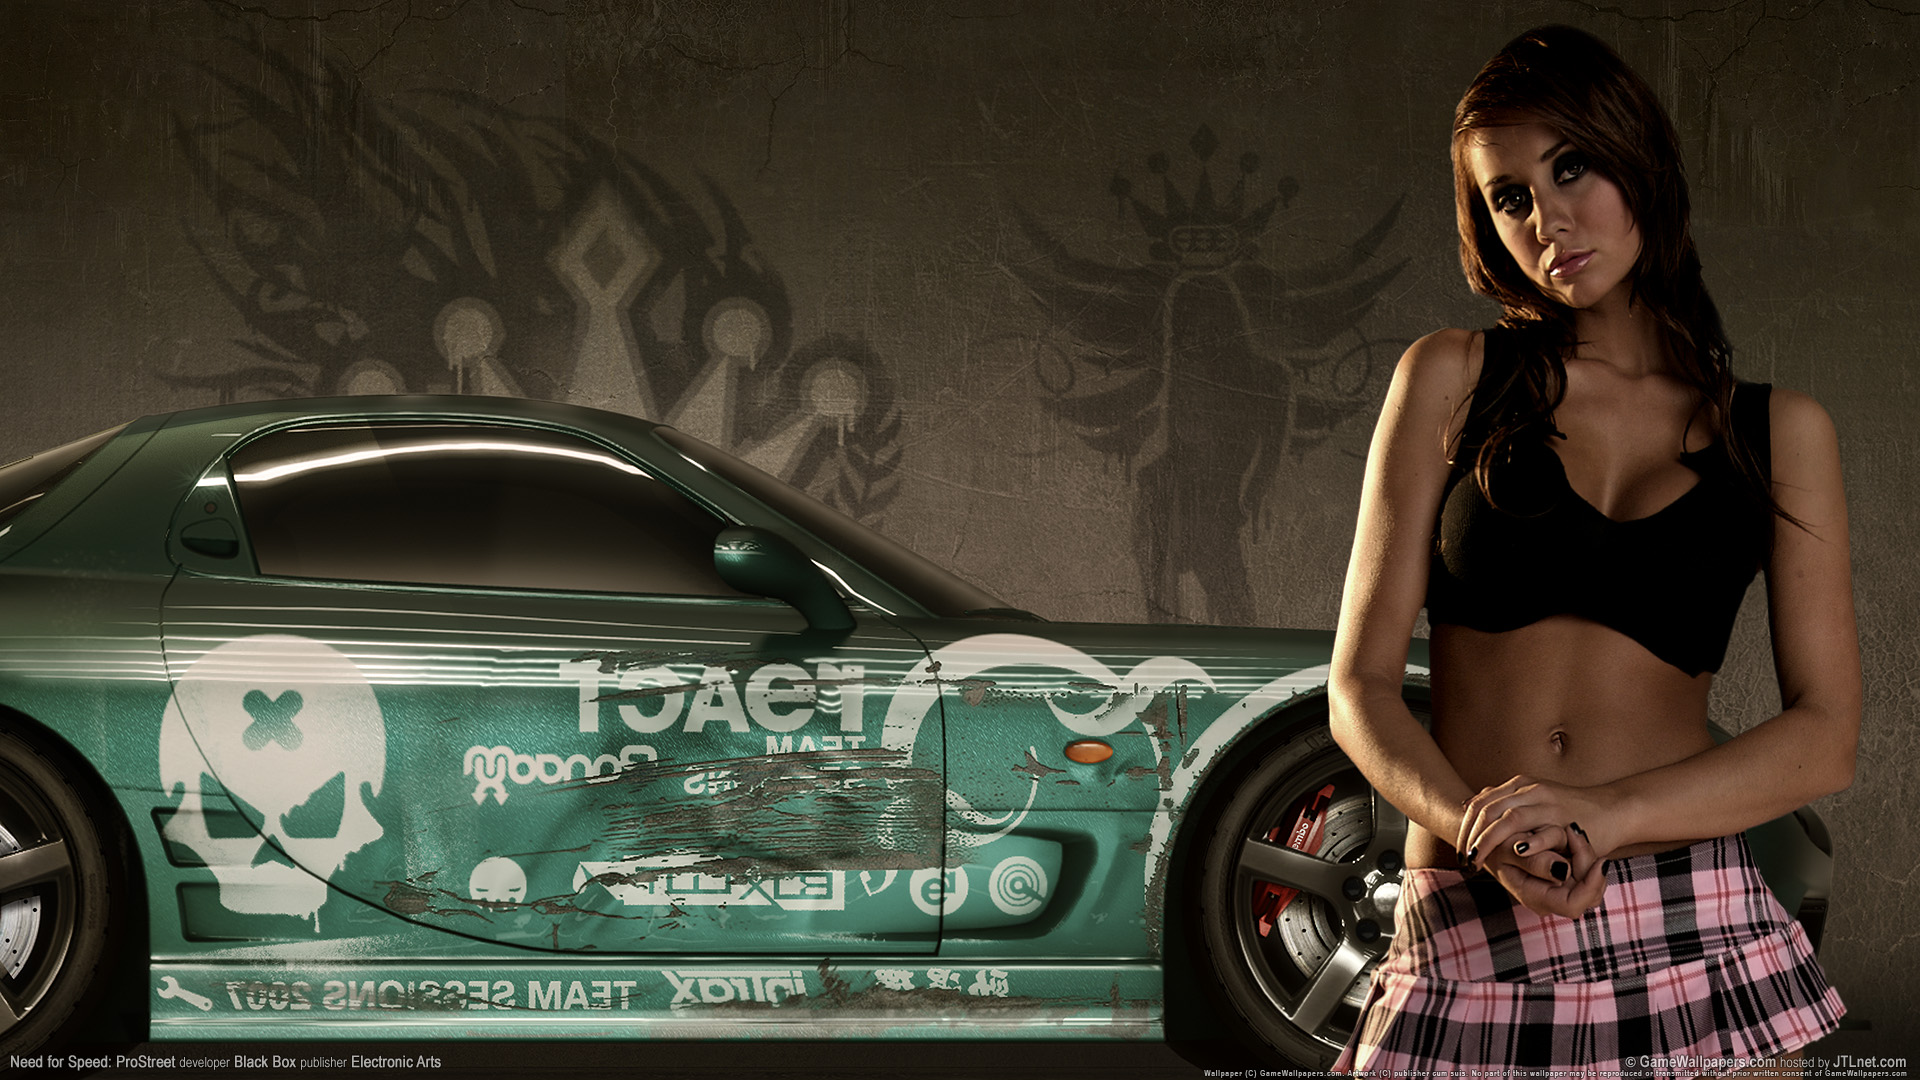 Need for speed prostreet Girls 2 825.11 Kb